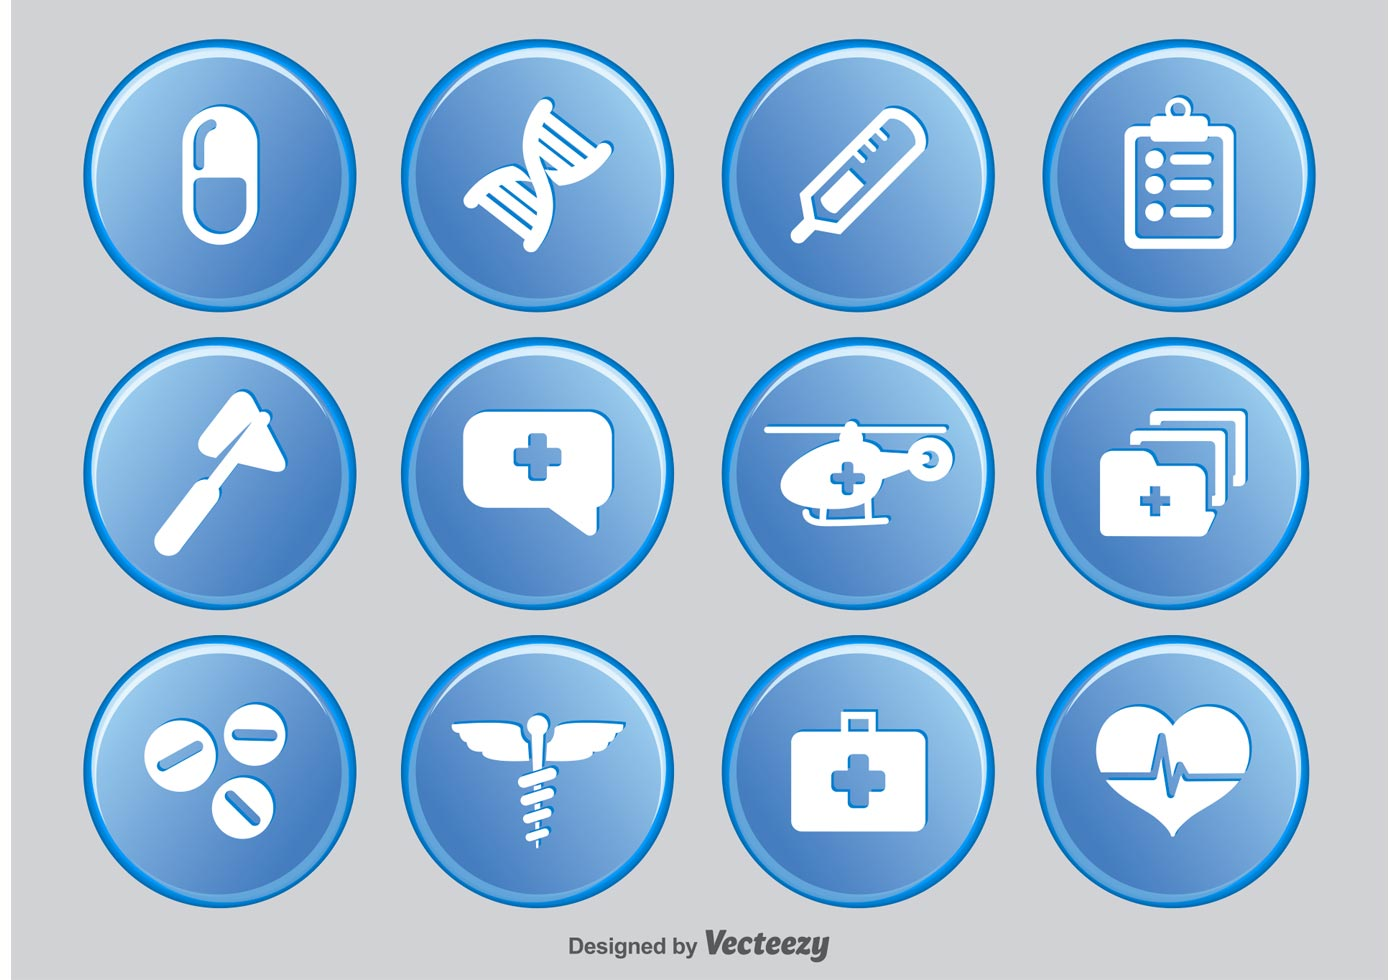 vector-medical-icon-set.jpg